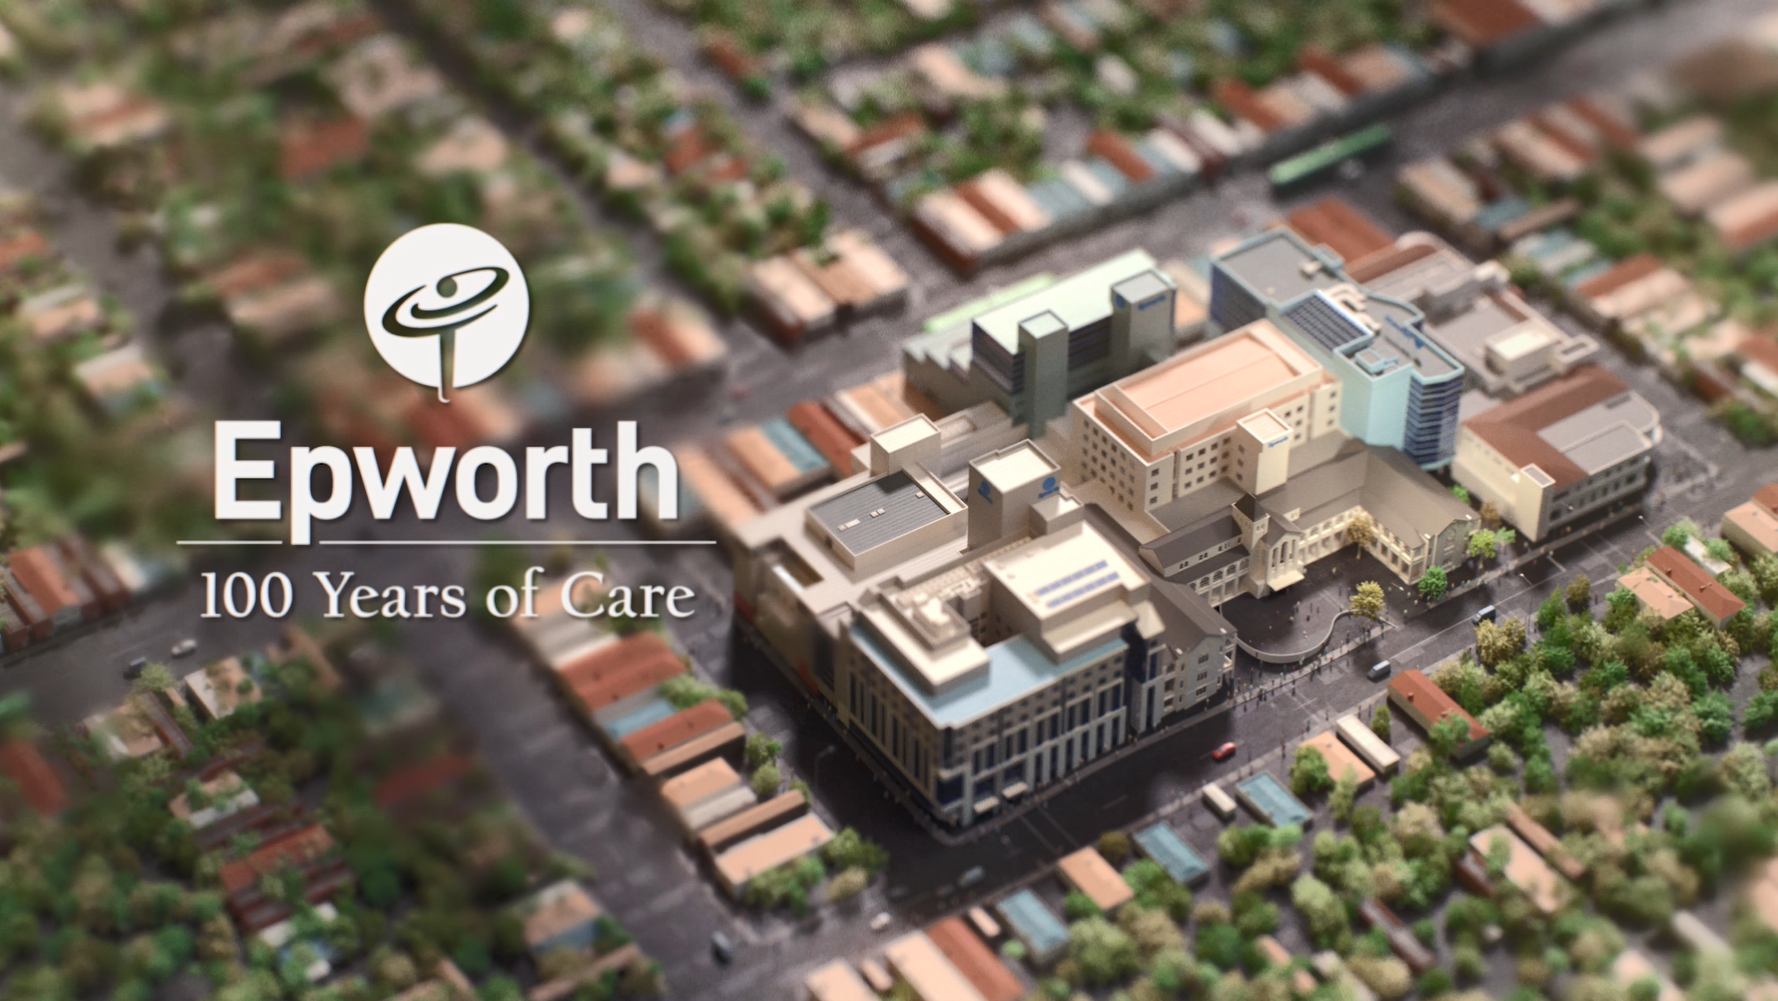 Epworth documentary trailer